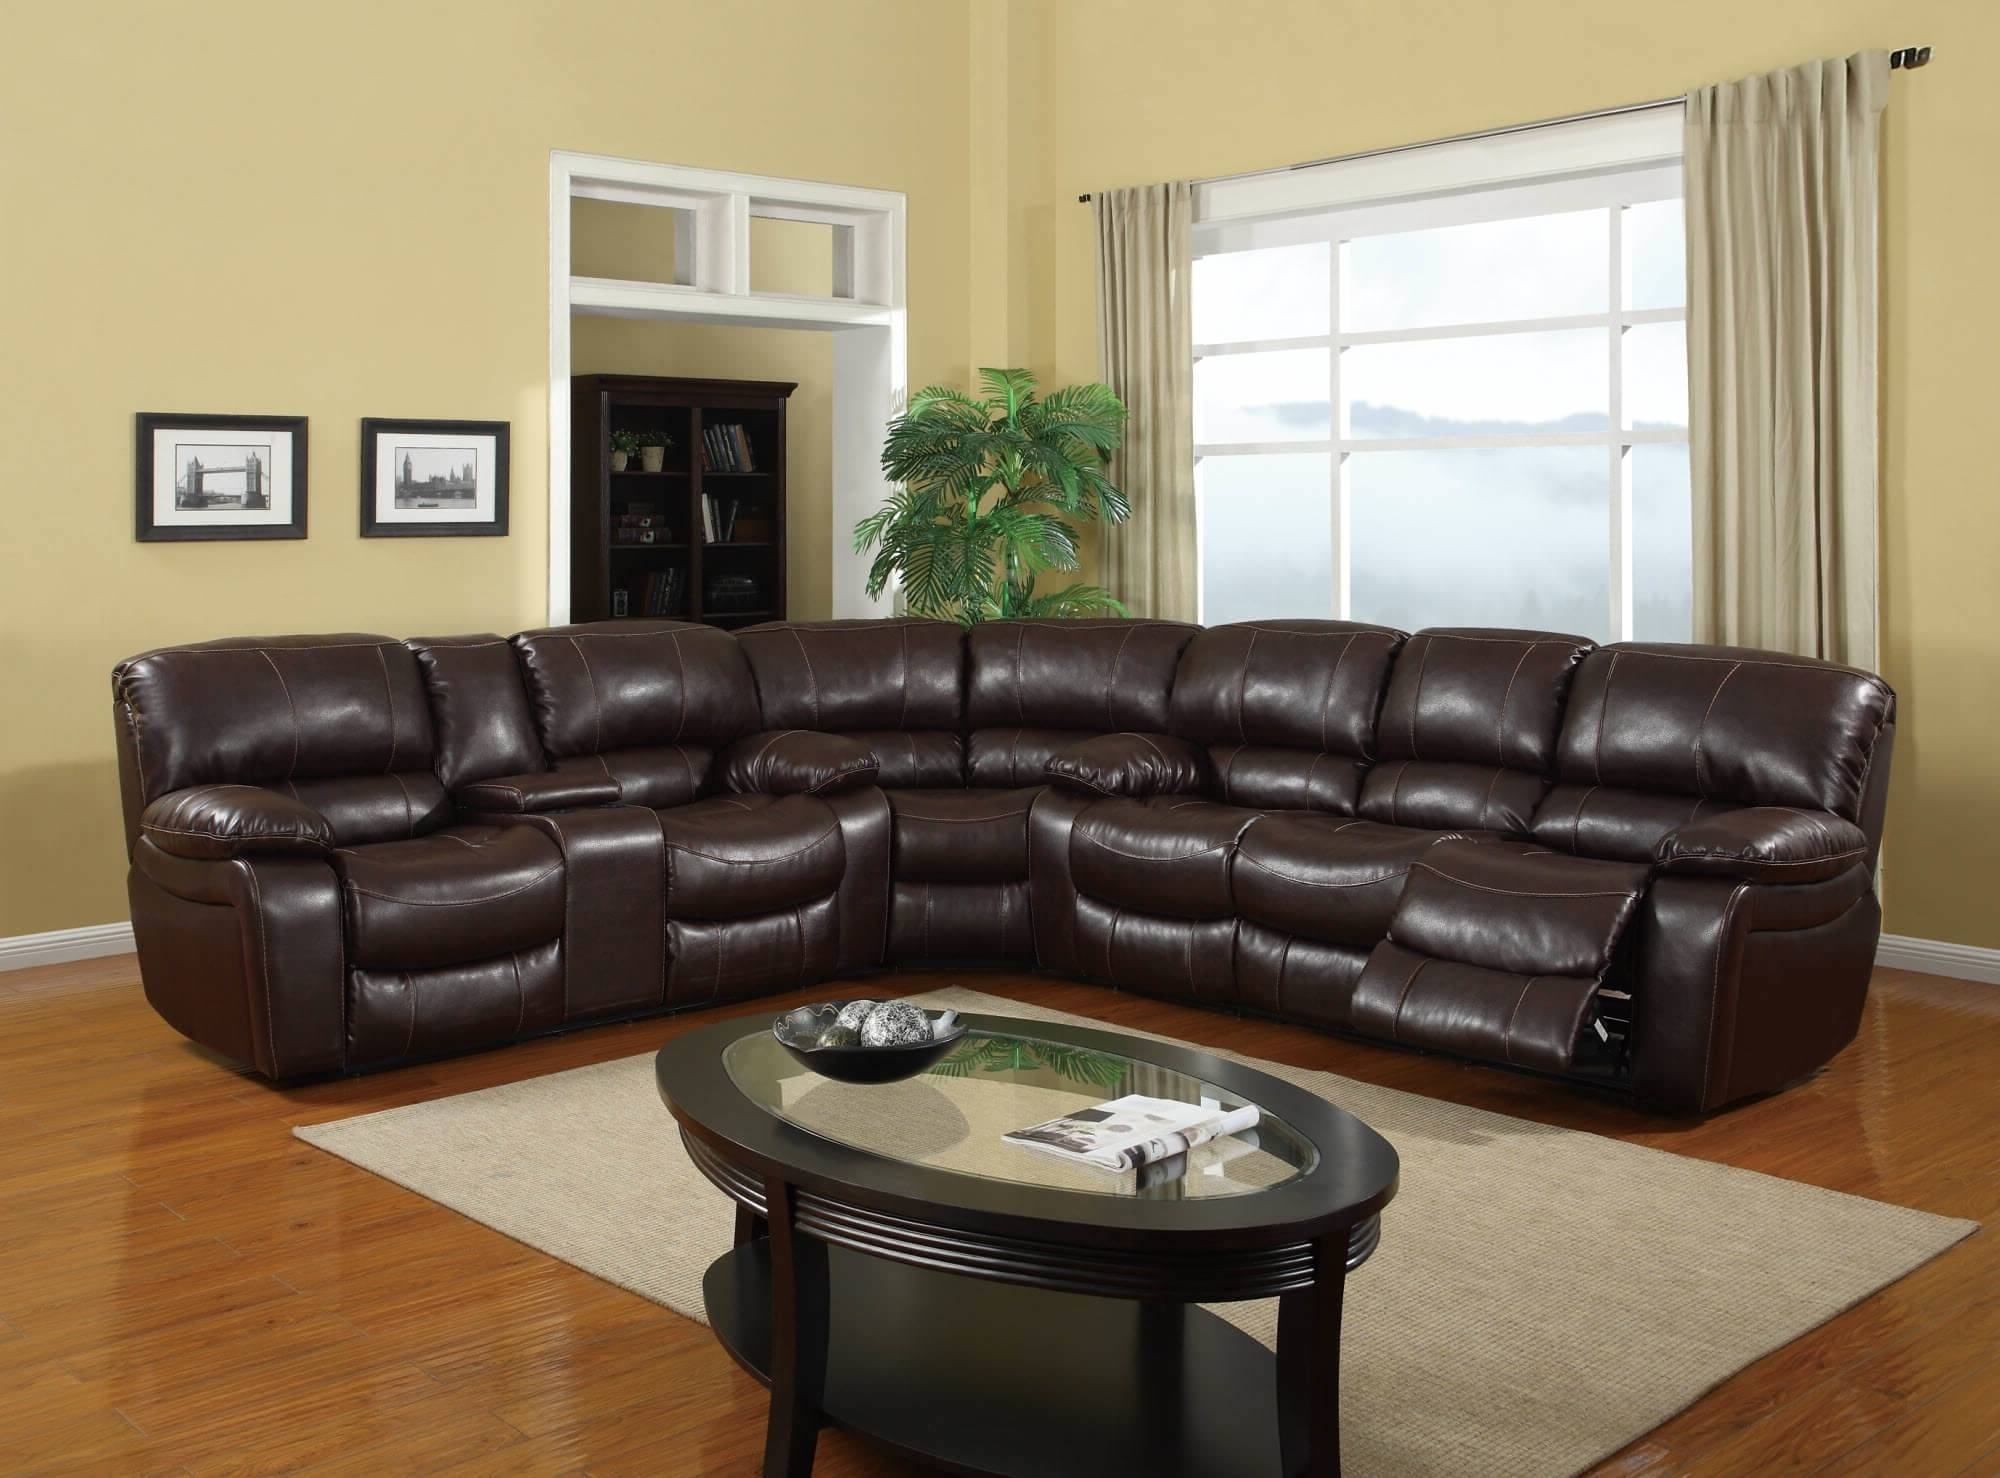 Lovely High Quality Sectional Sofa 30 For Sofa Room Ideas With regarding Quality Sectional Sofa (Image 11 of 30)